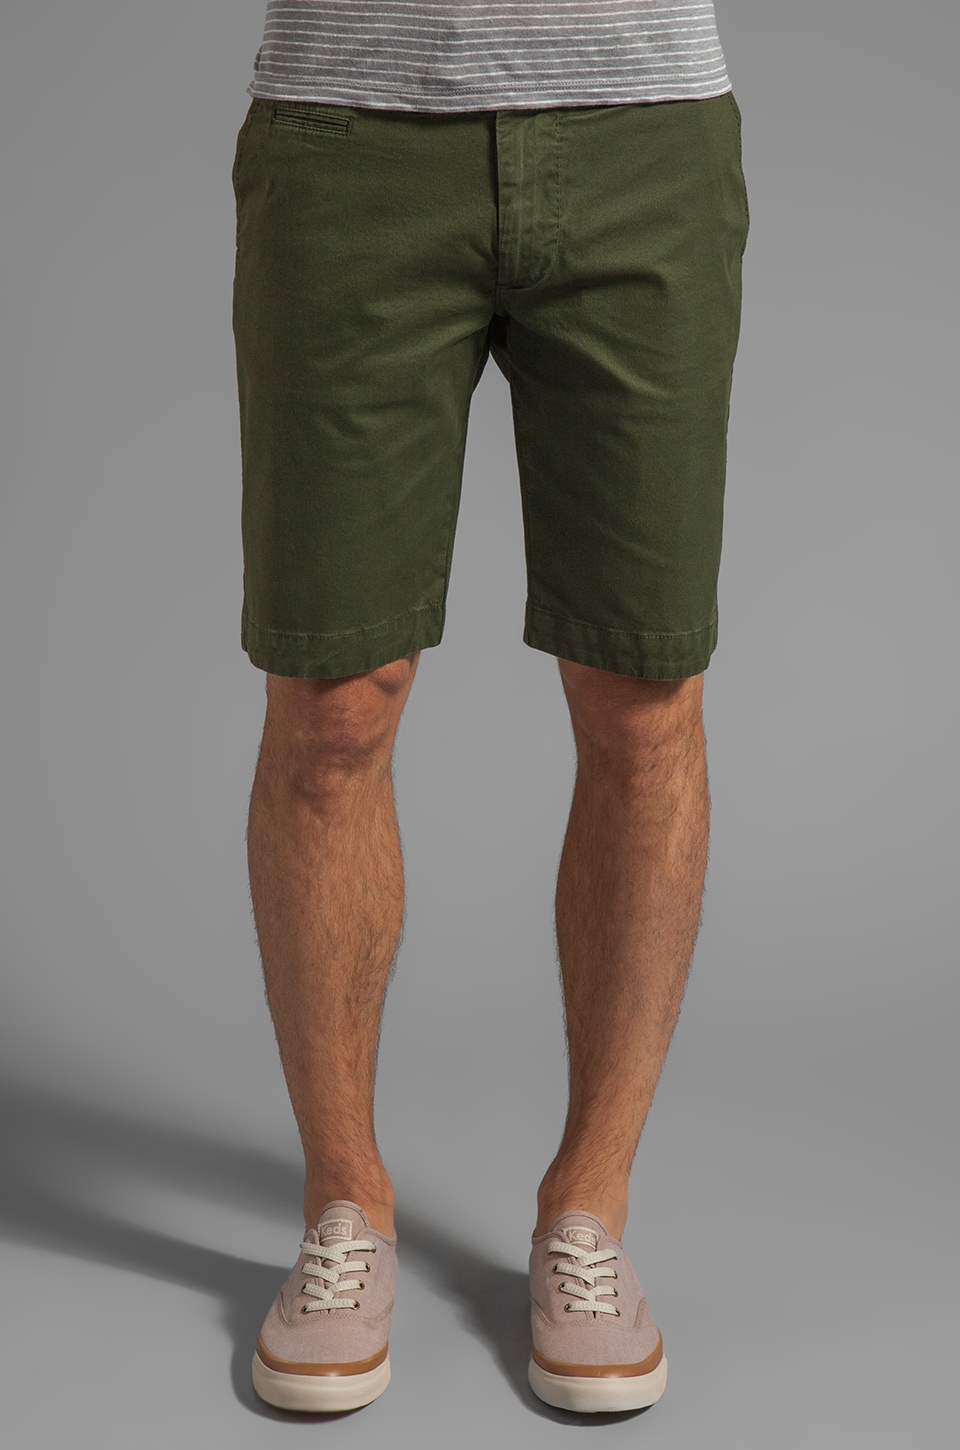 Diesel Chi-Tight Short in Green/ Jungle